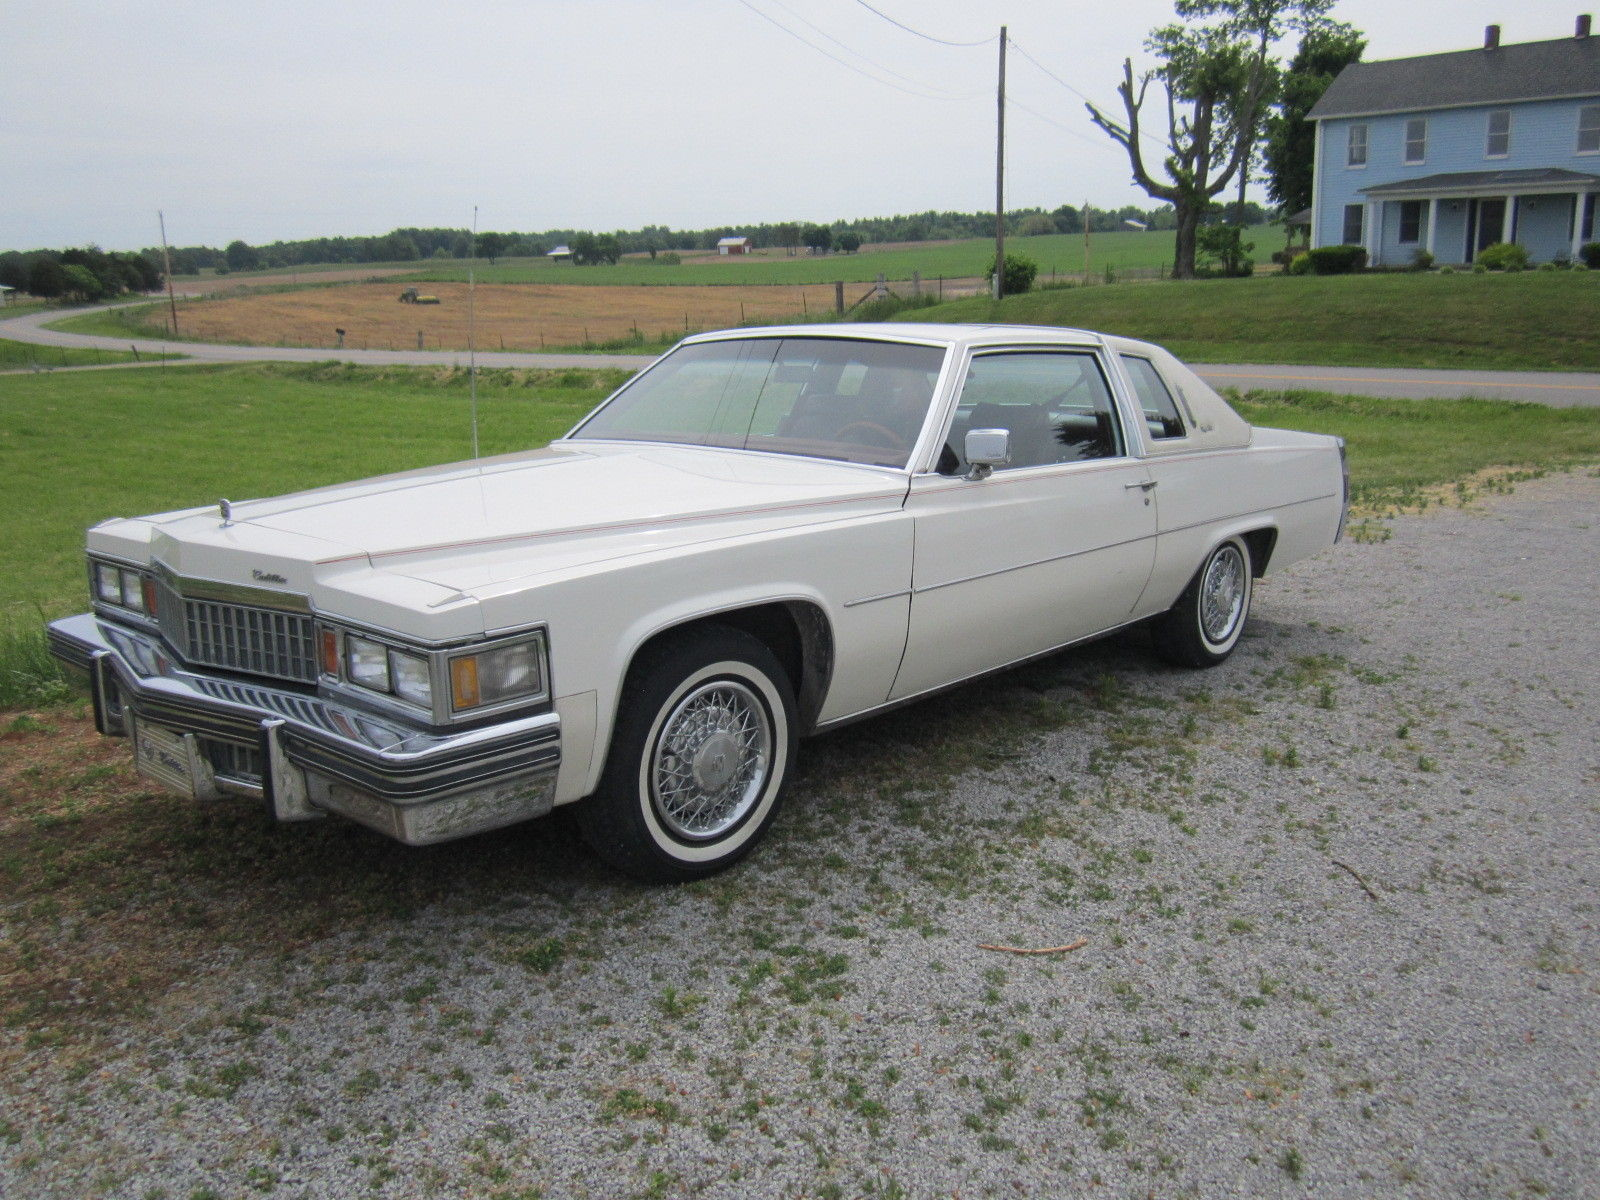 in addition Cadillac Seville besides Bmw Il E moreover Cadillac Deville Cadillacs For Sale likewise Px Corbillard Cadillac. on 1996 cadillac fleetwood